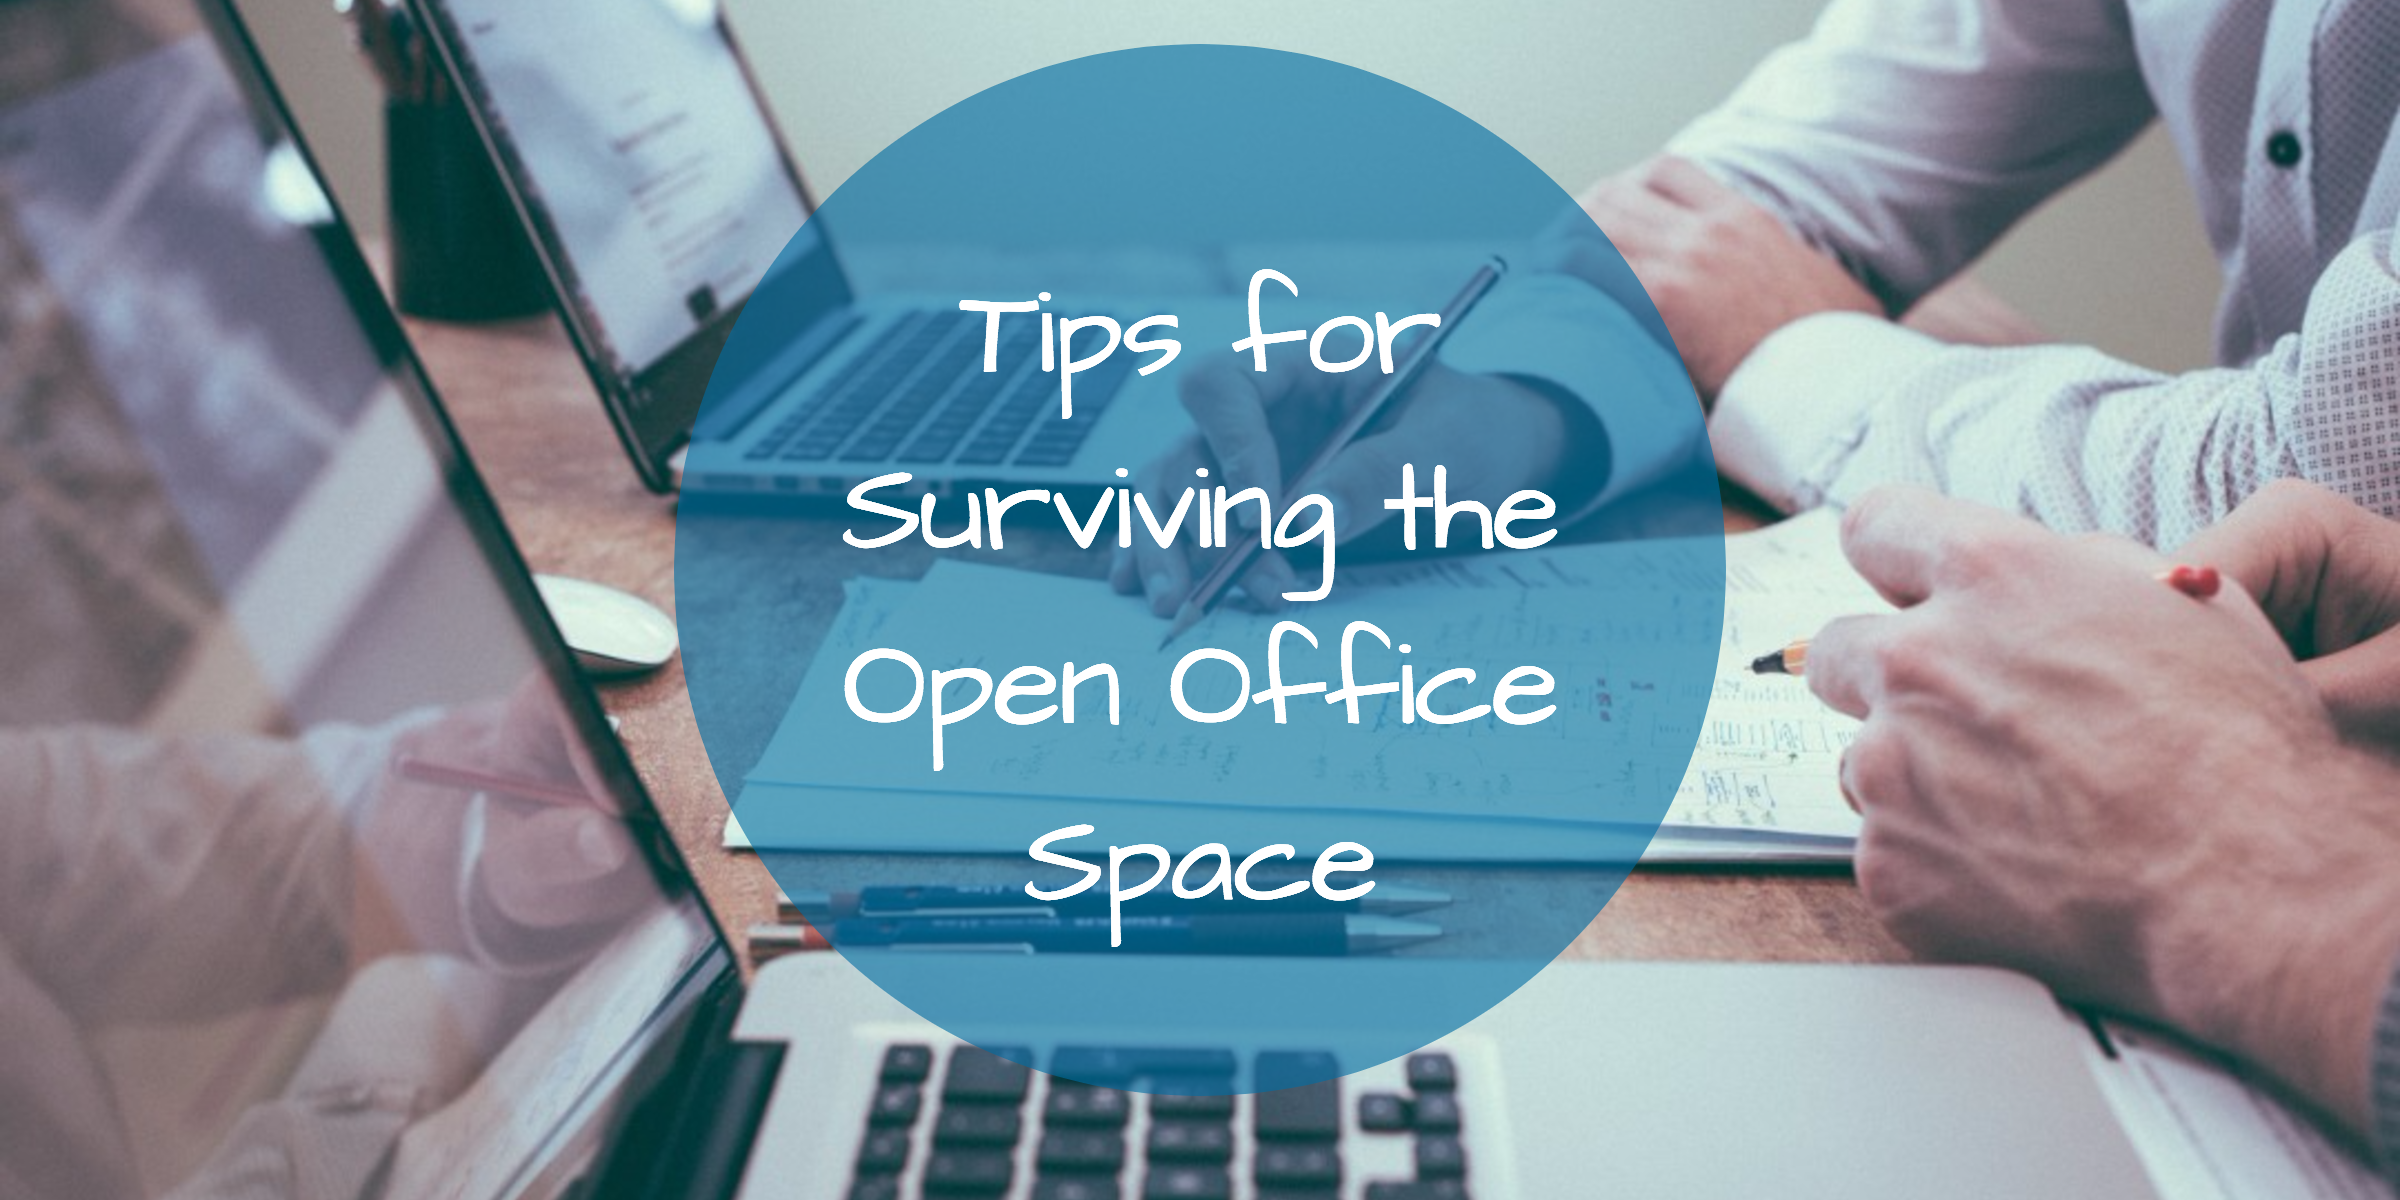 tips-for-surviving-the-open-office-space.png